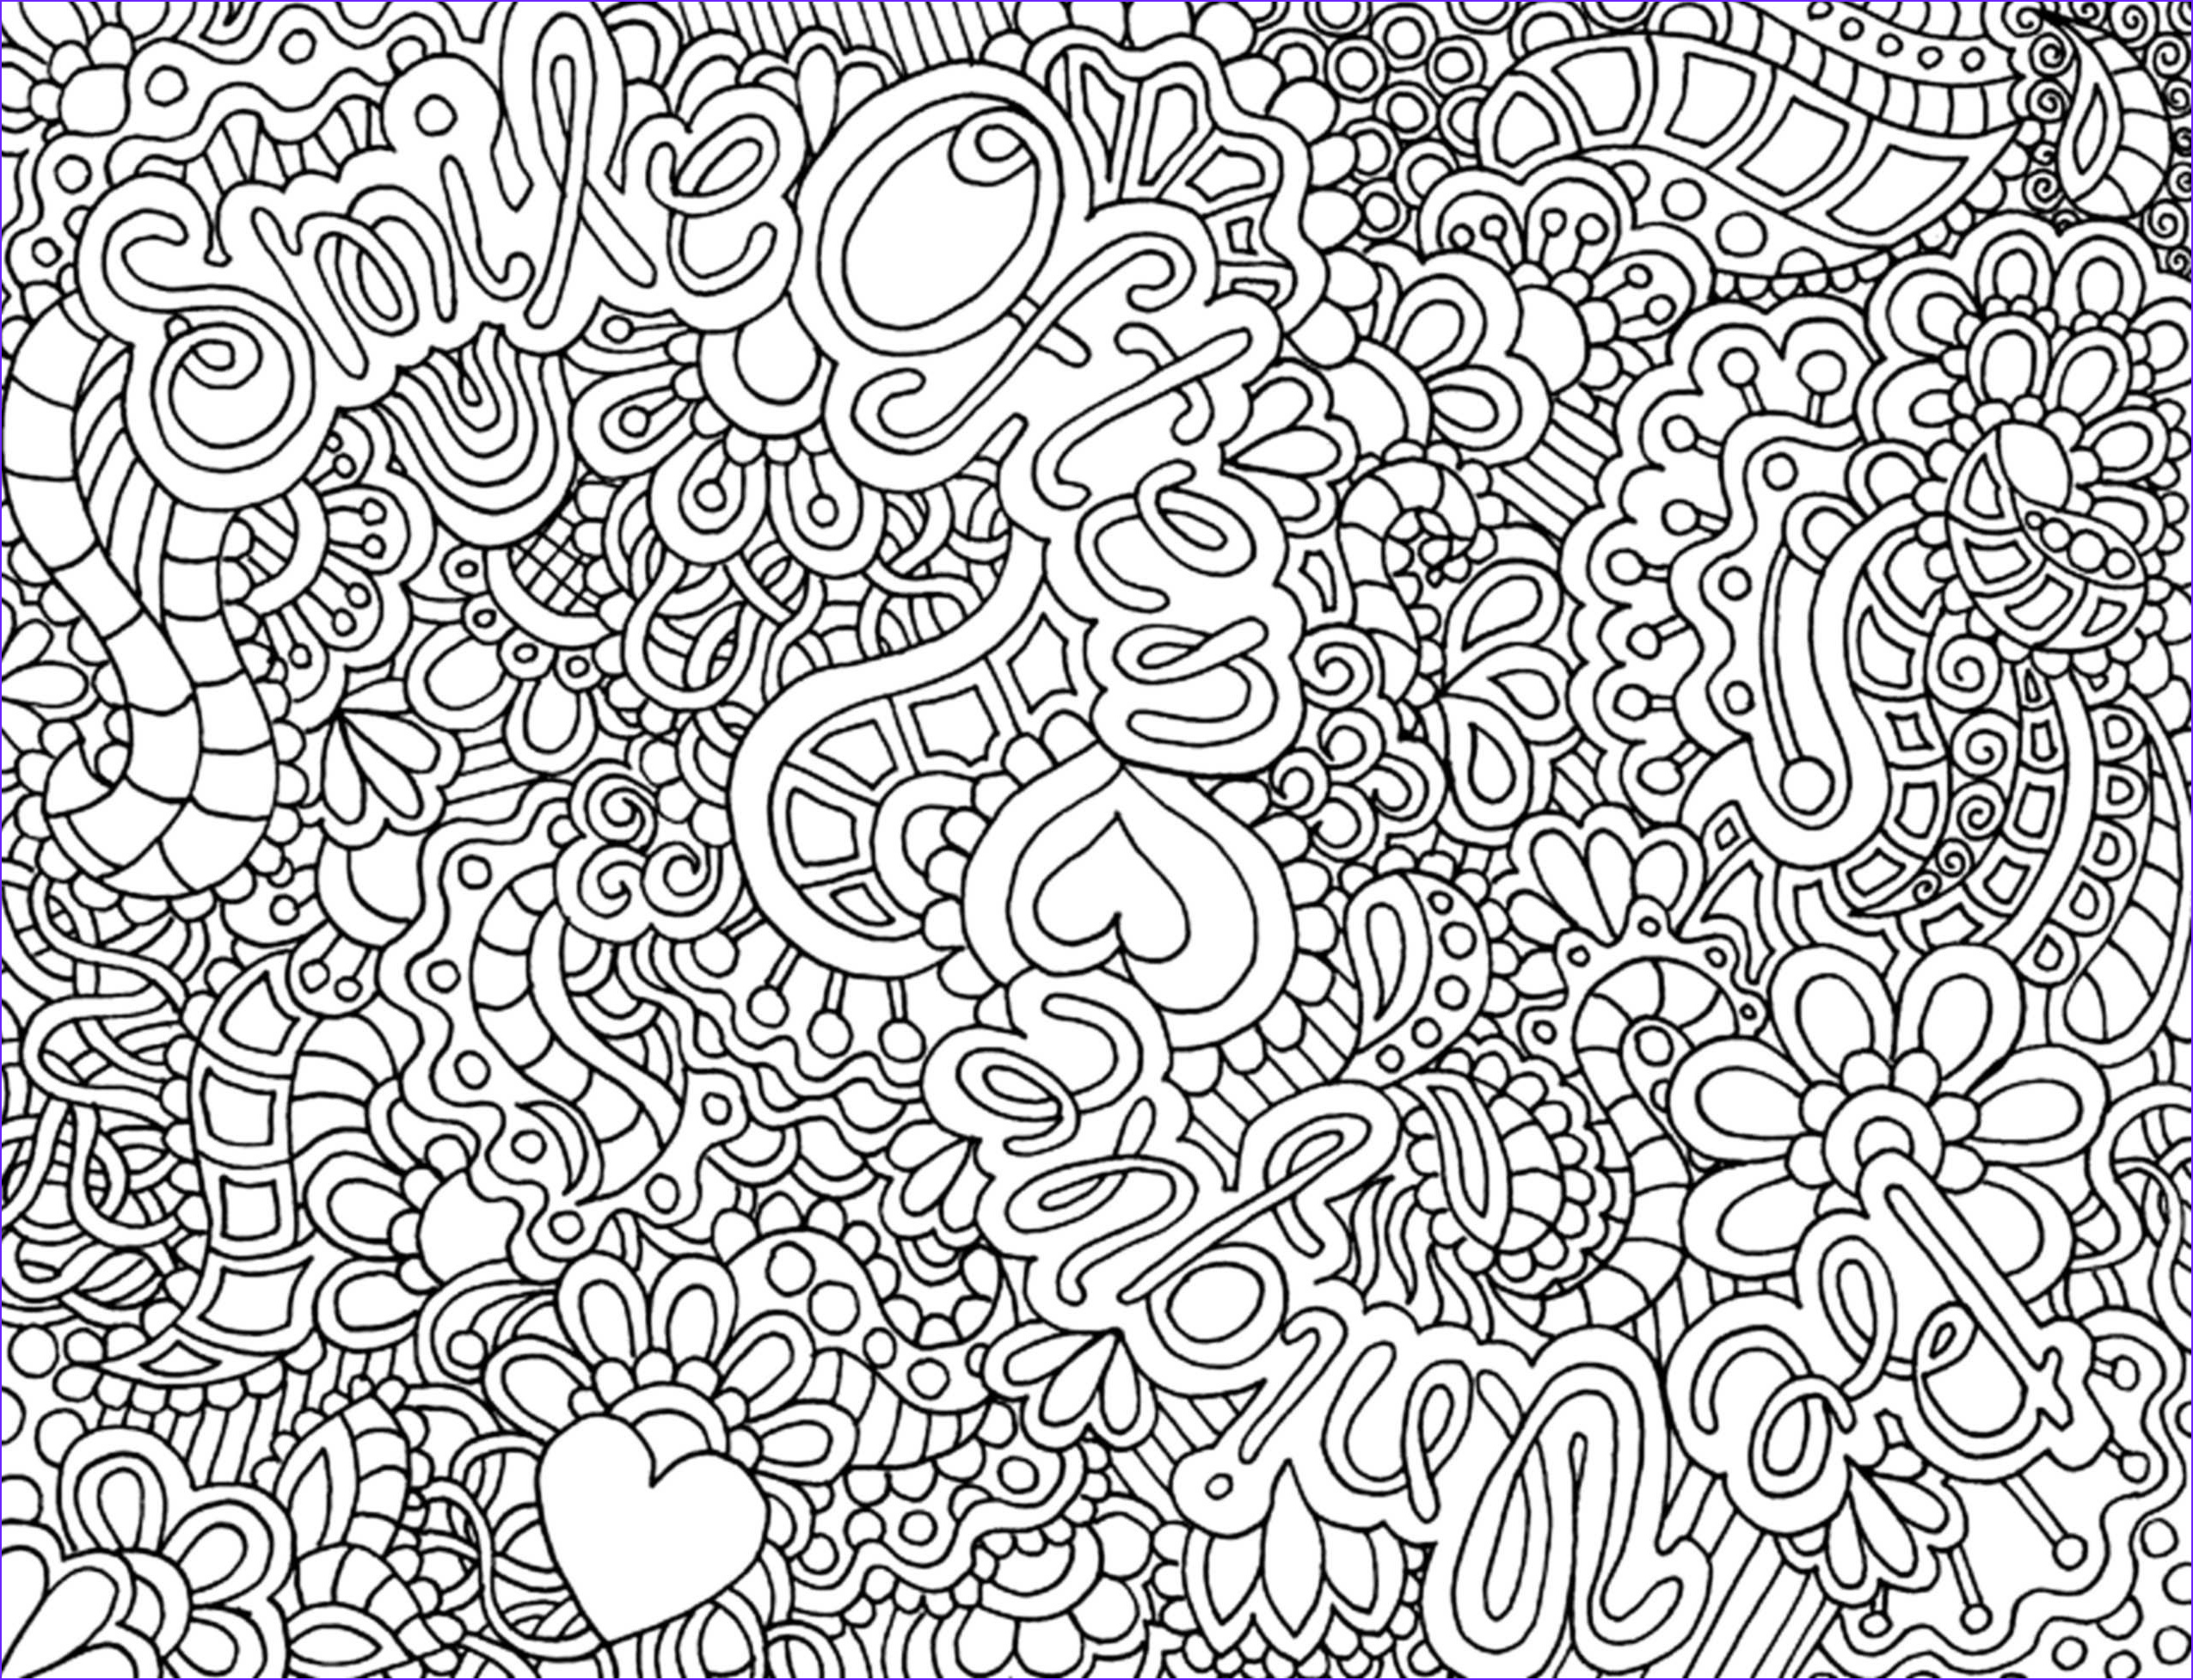 Coloring for Teens New Gallery Plex Coloring Pages for Teenagers A מנדלות